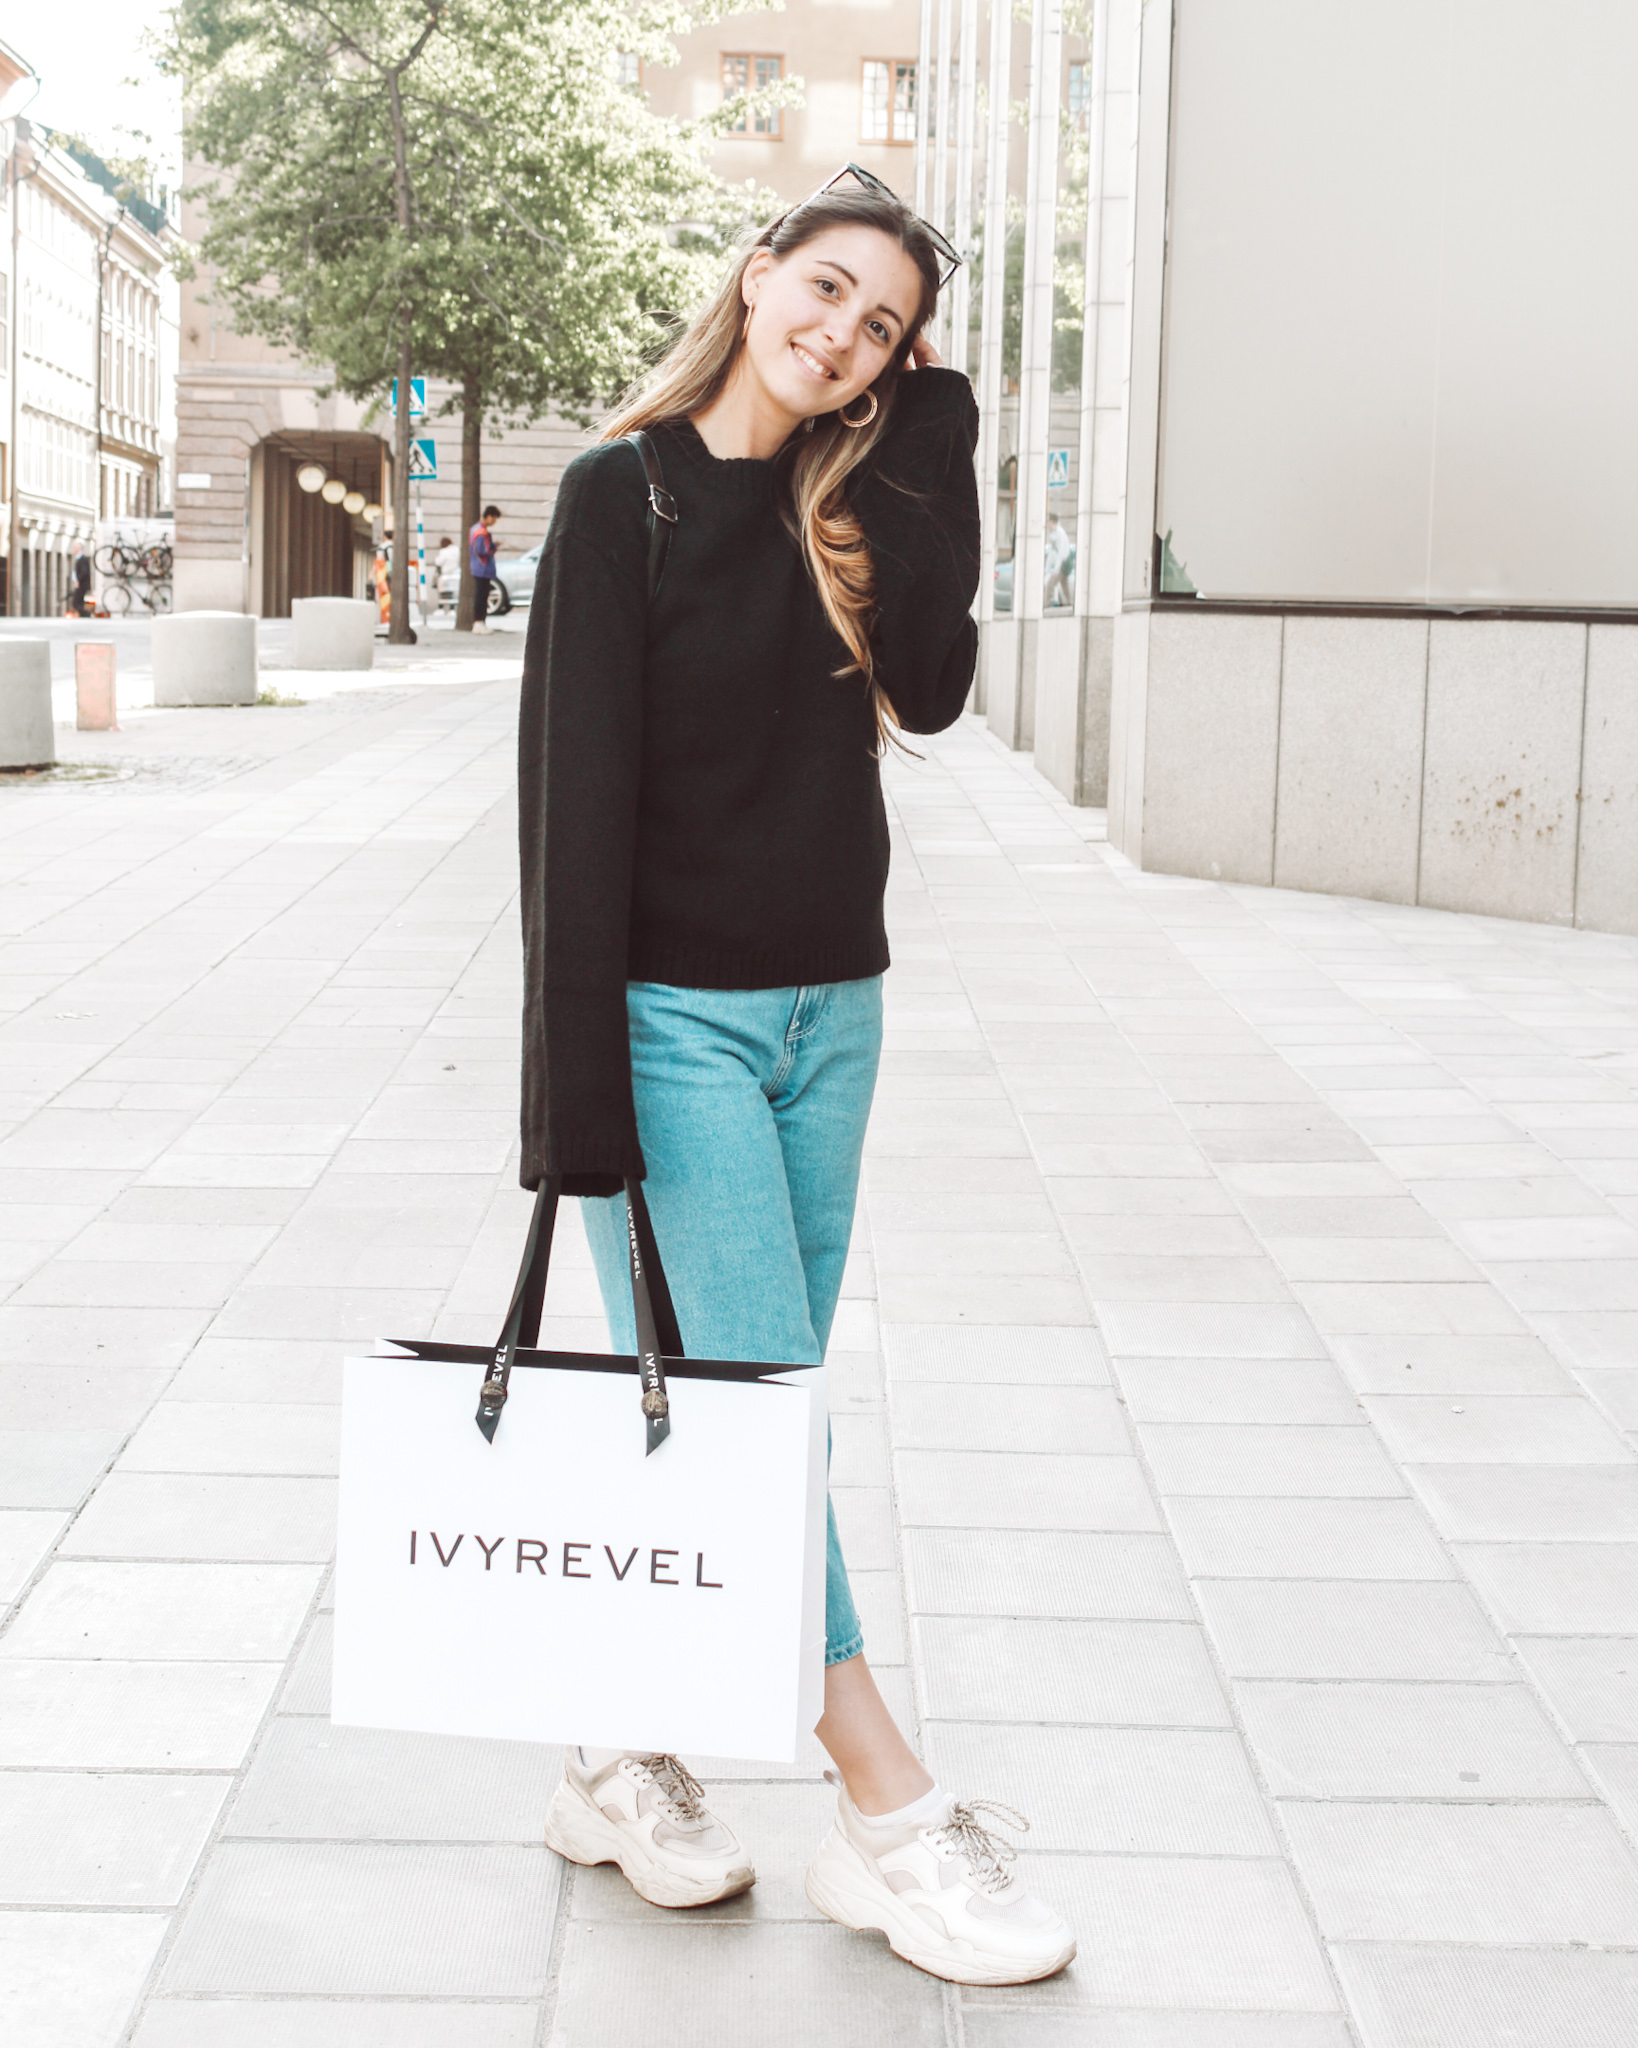 IvyRevel Knitwear